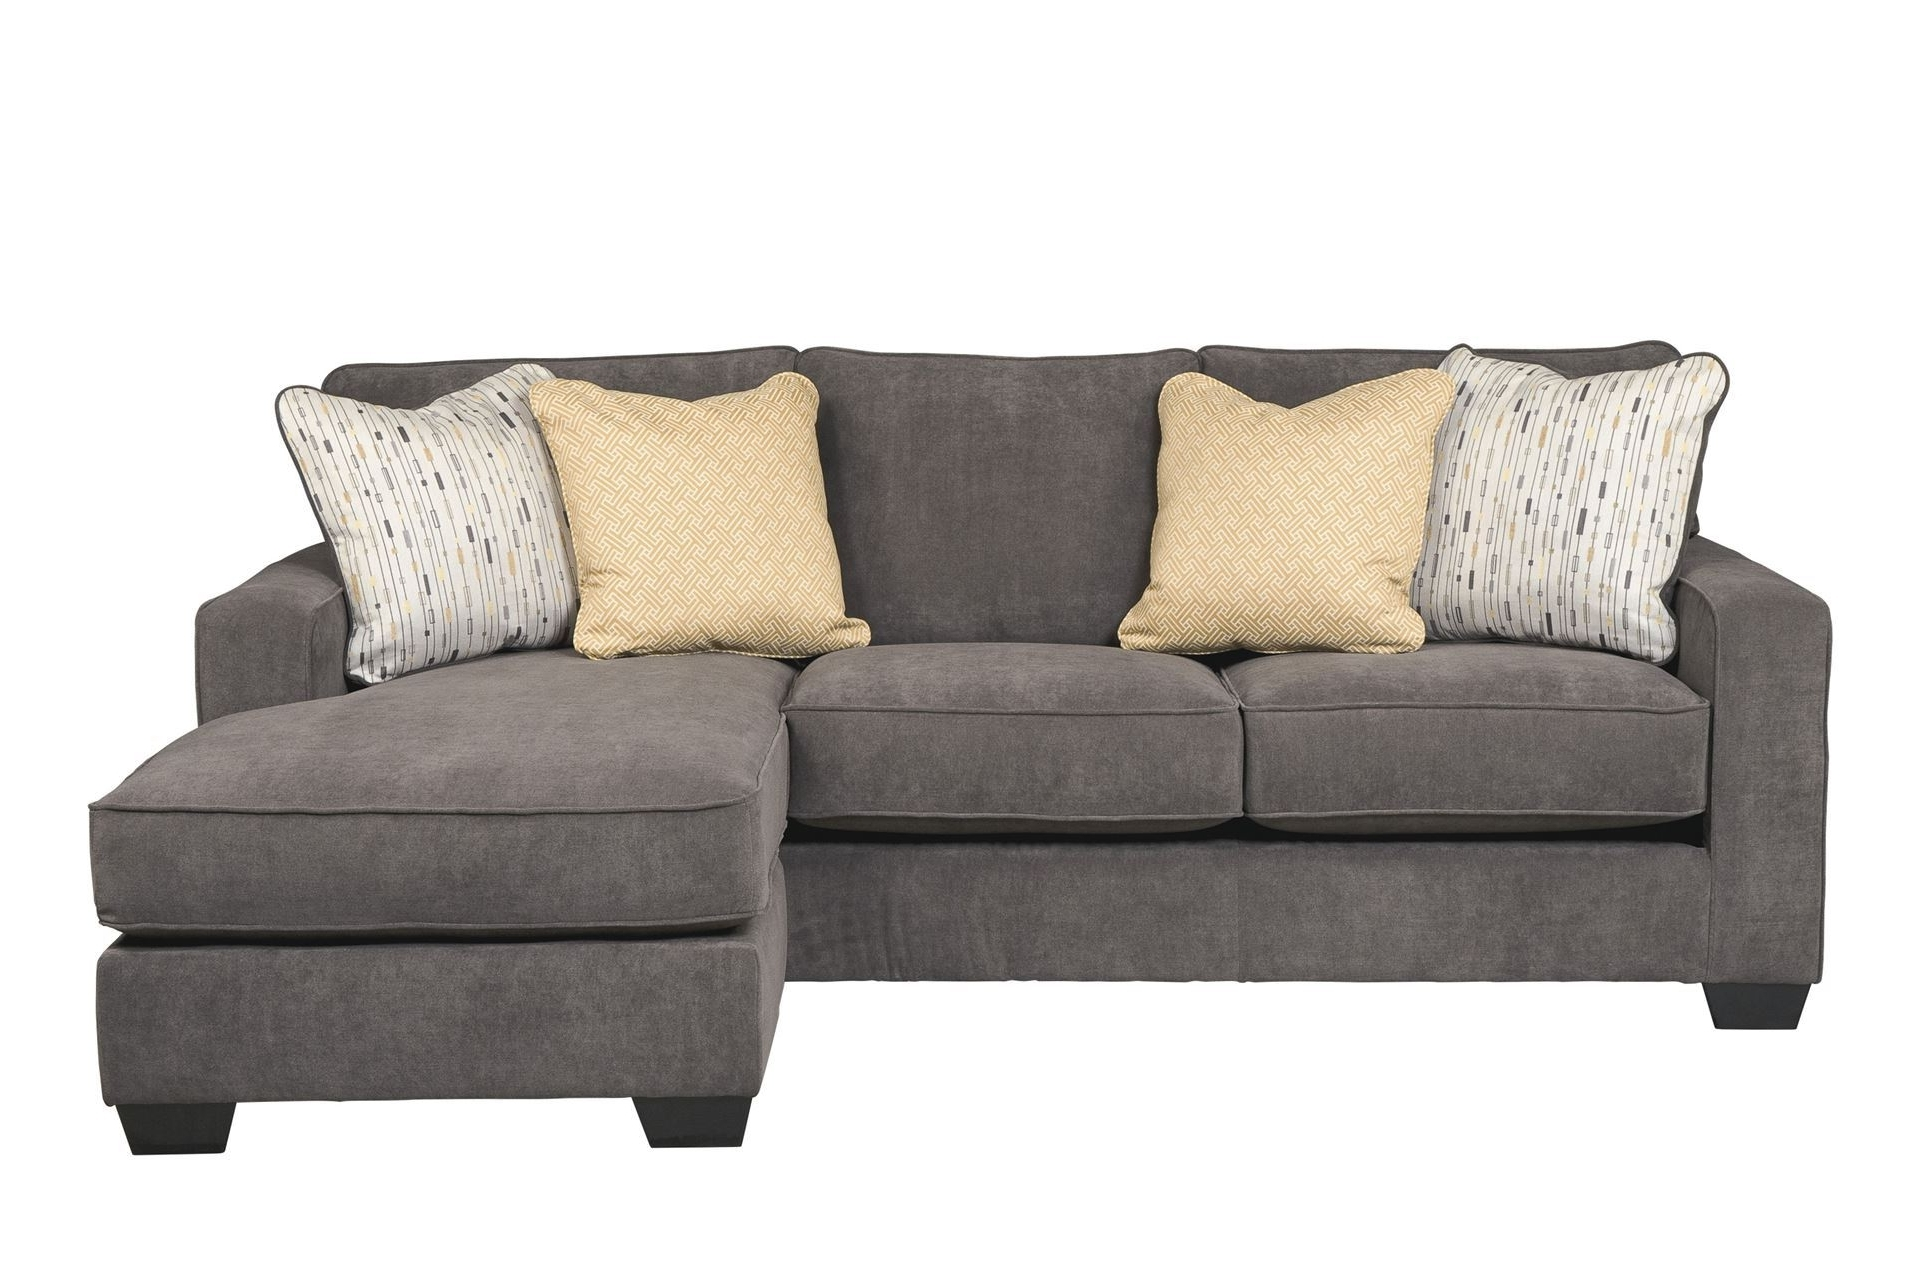 Famous Couches With Chaise Intended For Amazing Couch With Chaise 91 For Your Sofa Design Ideas With Couch (View 6 of 15)